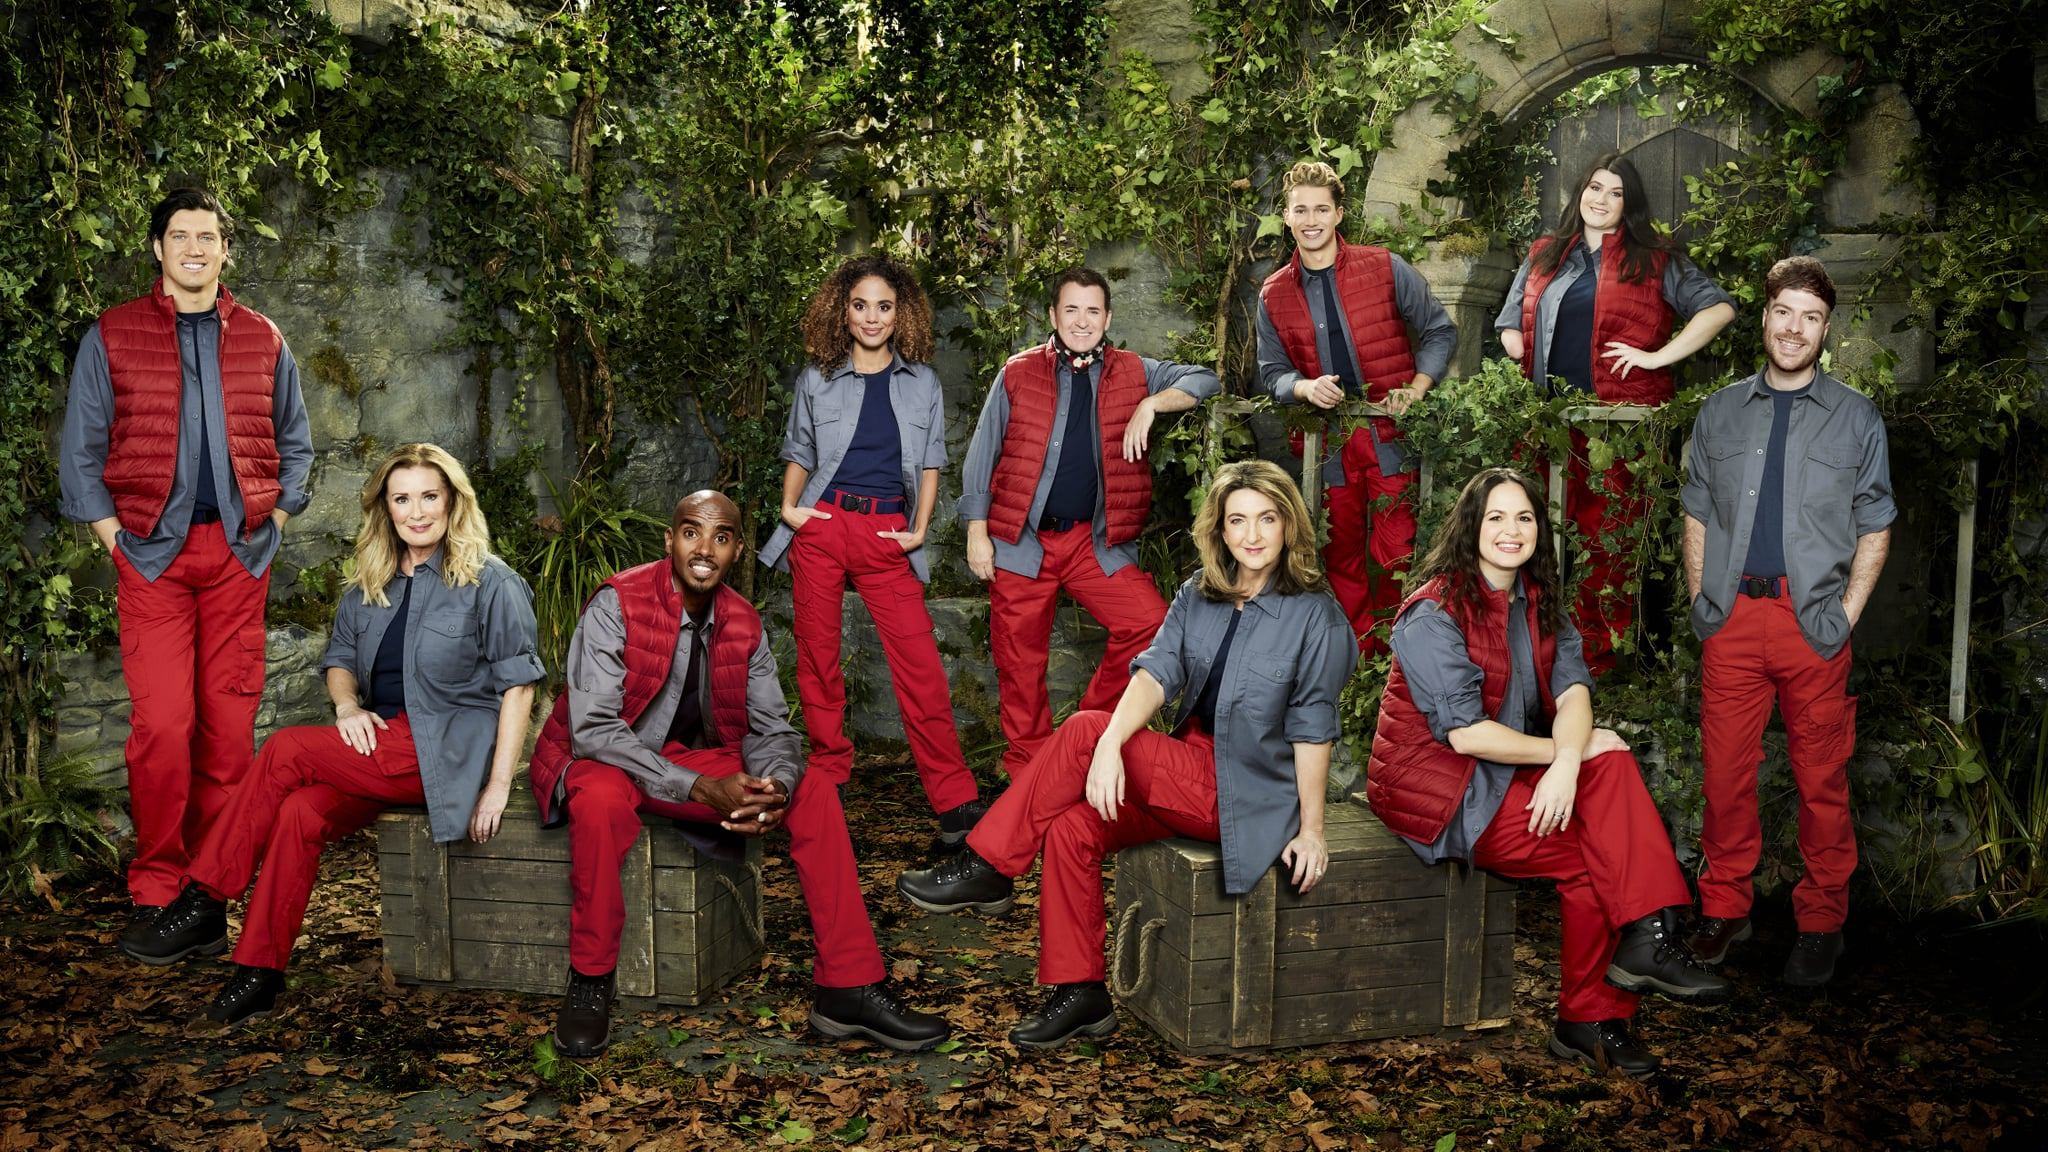 IMAGE MUST BE CREDITED TO ITV. Undated handout photo issued by ITV of (left to right) Vernon Kay, Beverley Callard, Sir Mo Farah CBE, Jessica Plummer, Shane Richie, Victoria Derbyshire, AJ Pritchard, Giovanna Fletcher, Hollie Arnold MBE and Jordan North, stars featuring in the new series of I'm A Celebrity??? Get Me Out Of Here! Issue date: Sunday November 8, 2020. The new series, hosted by Ant and Dec, will take place at Gwrych Castle in Wales rather than the usual location in the Australian jungle due to coronavirus restrictions. See PA story SHOWBIZ Celebrity. Photo credit should read: ITV/PA Wire NOTE TO EDITORS: This handout photo may only be used in for editorial reporting purposes for the contemporaneous illustration of events, things or the people in the image or facts mentioned in the caption. Reuse of the picture may require further permission from the copyright holder.